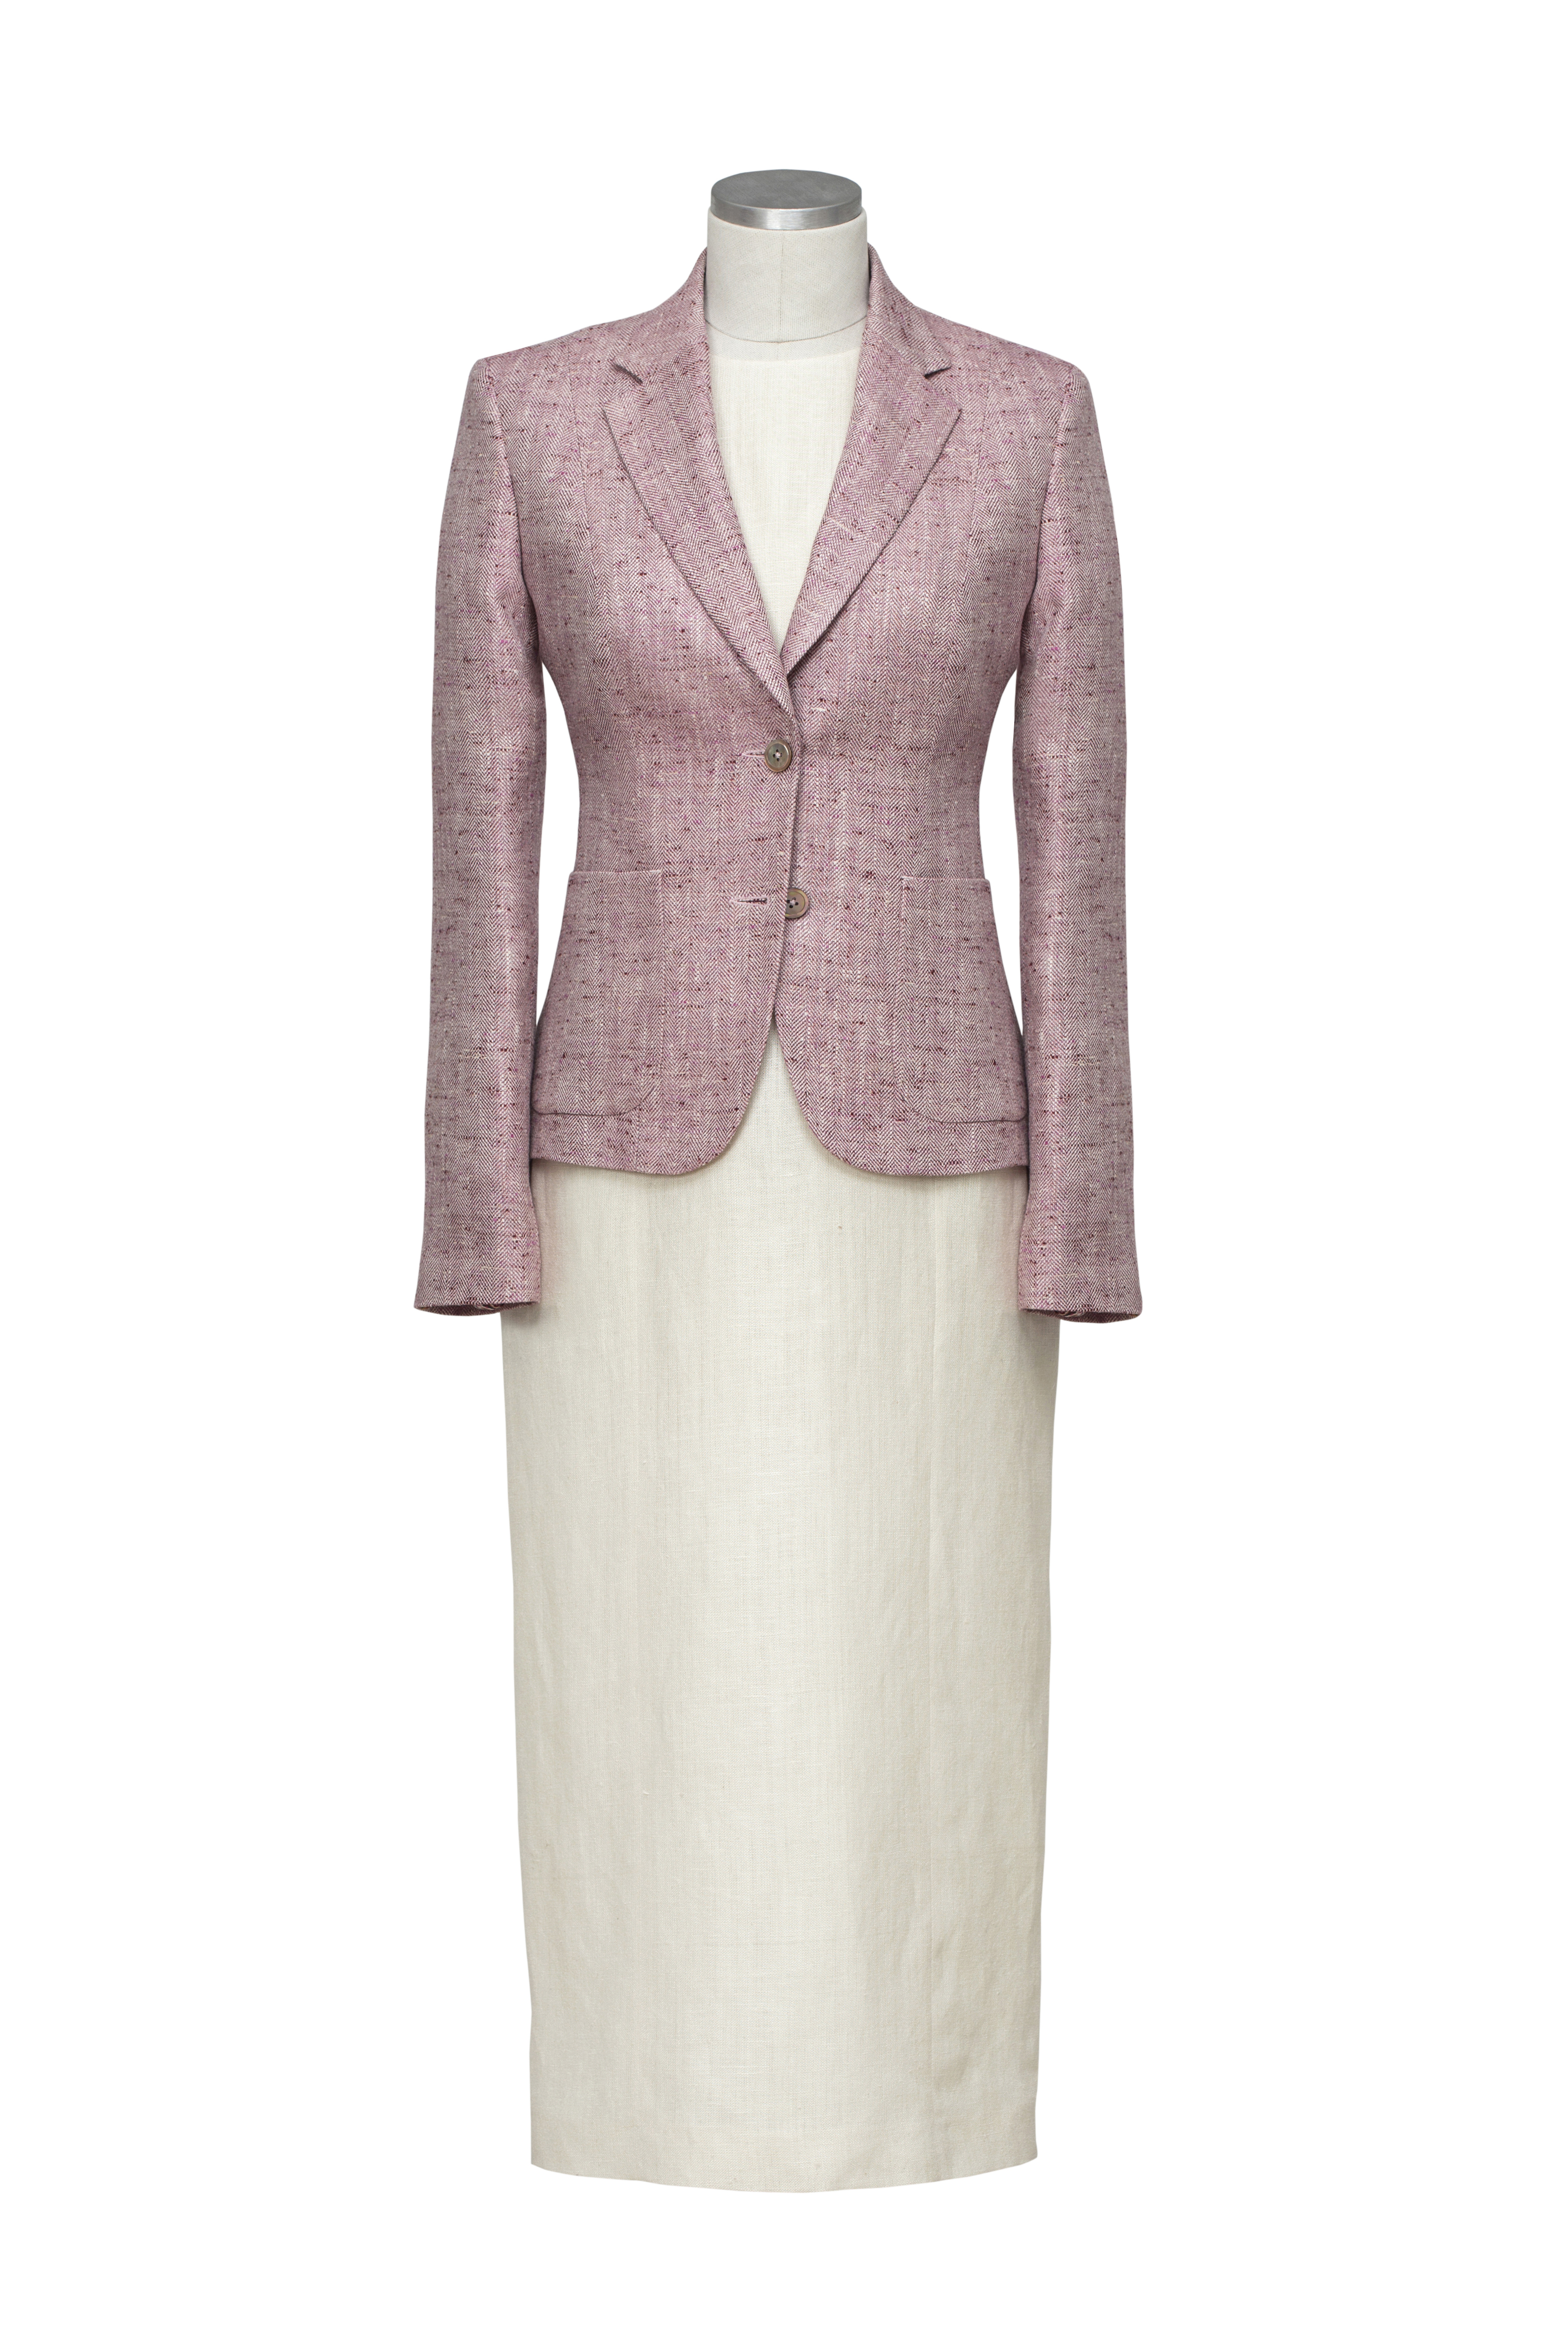 www.richardfox.co Ladies Custom Made dress and jacket suit